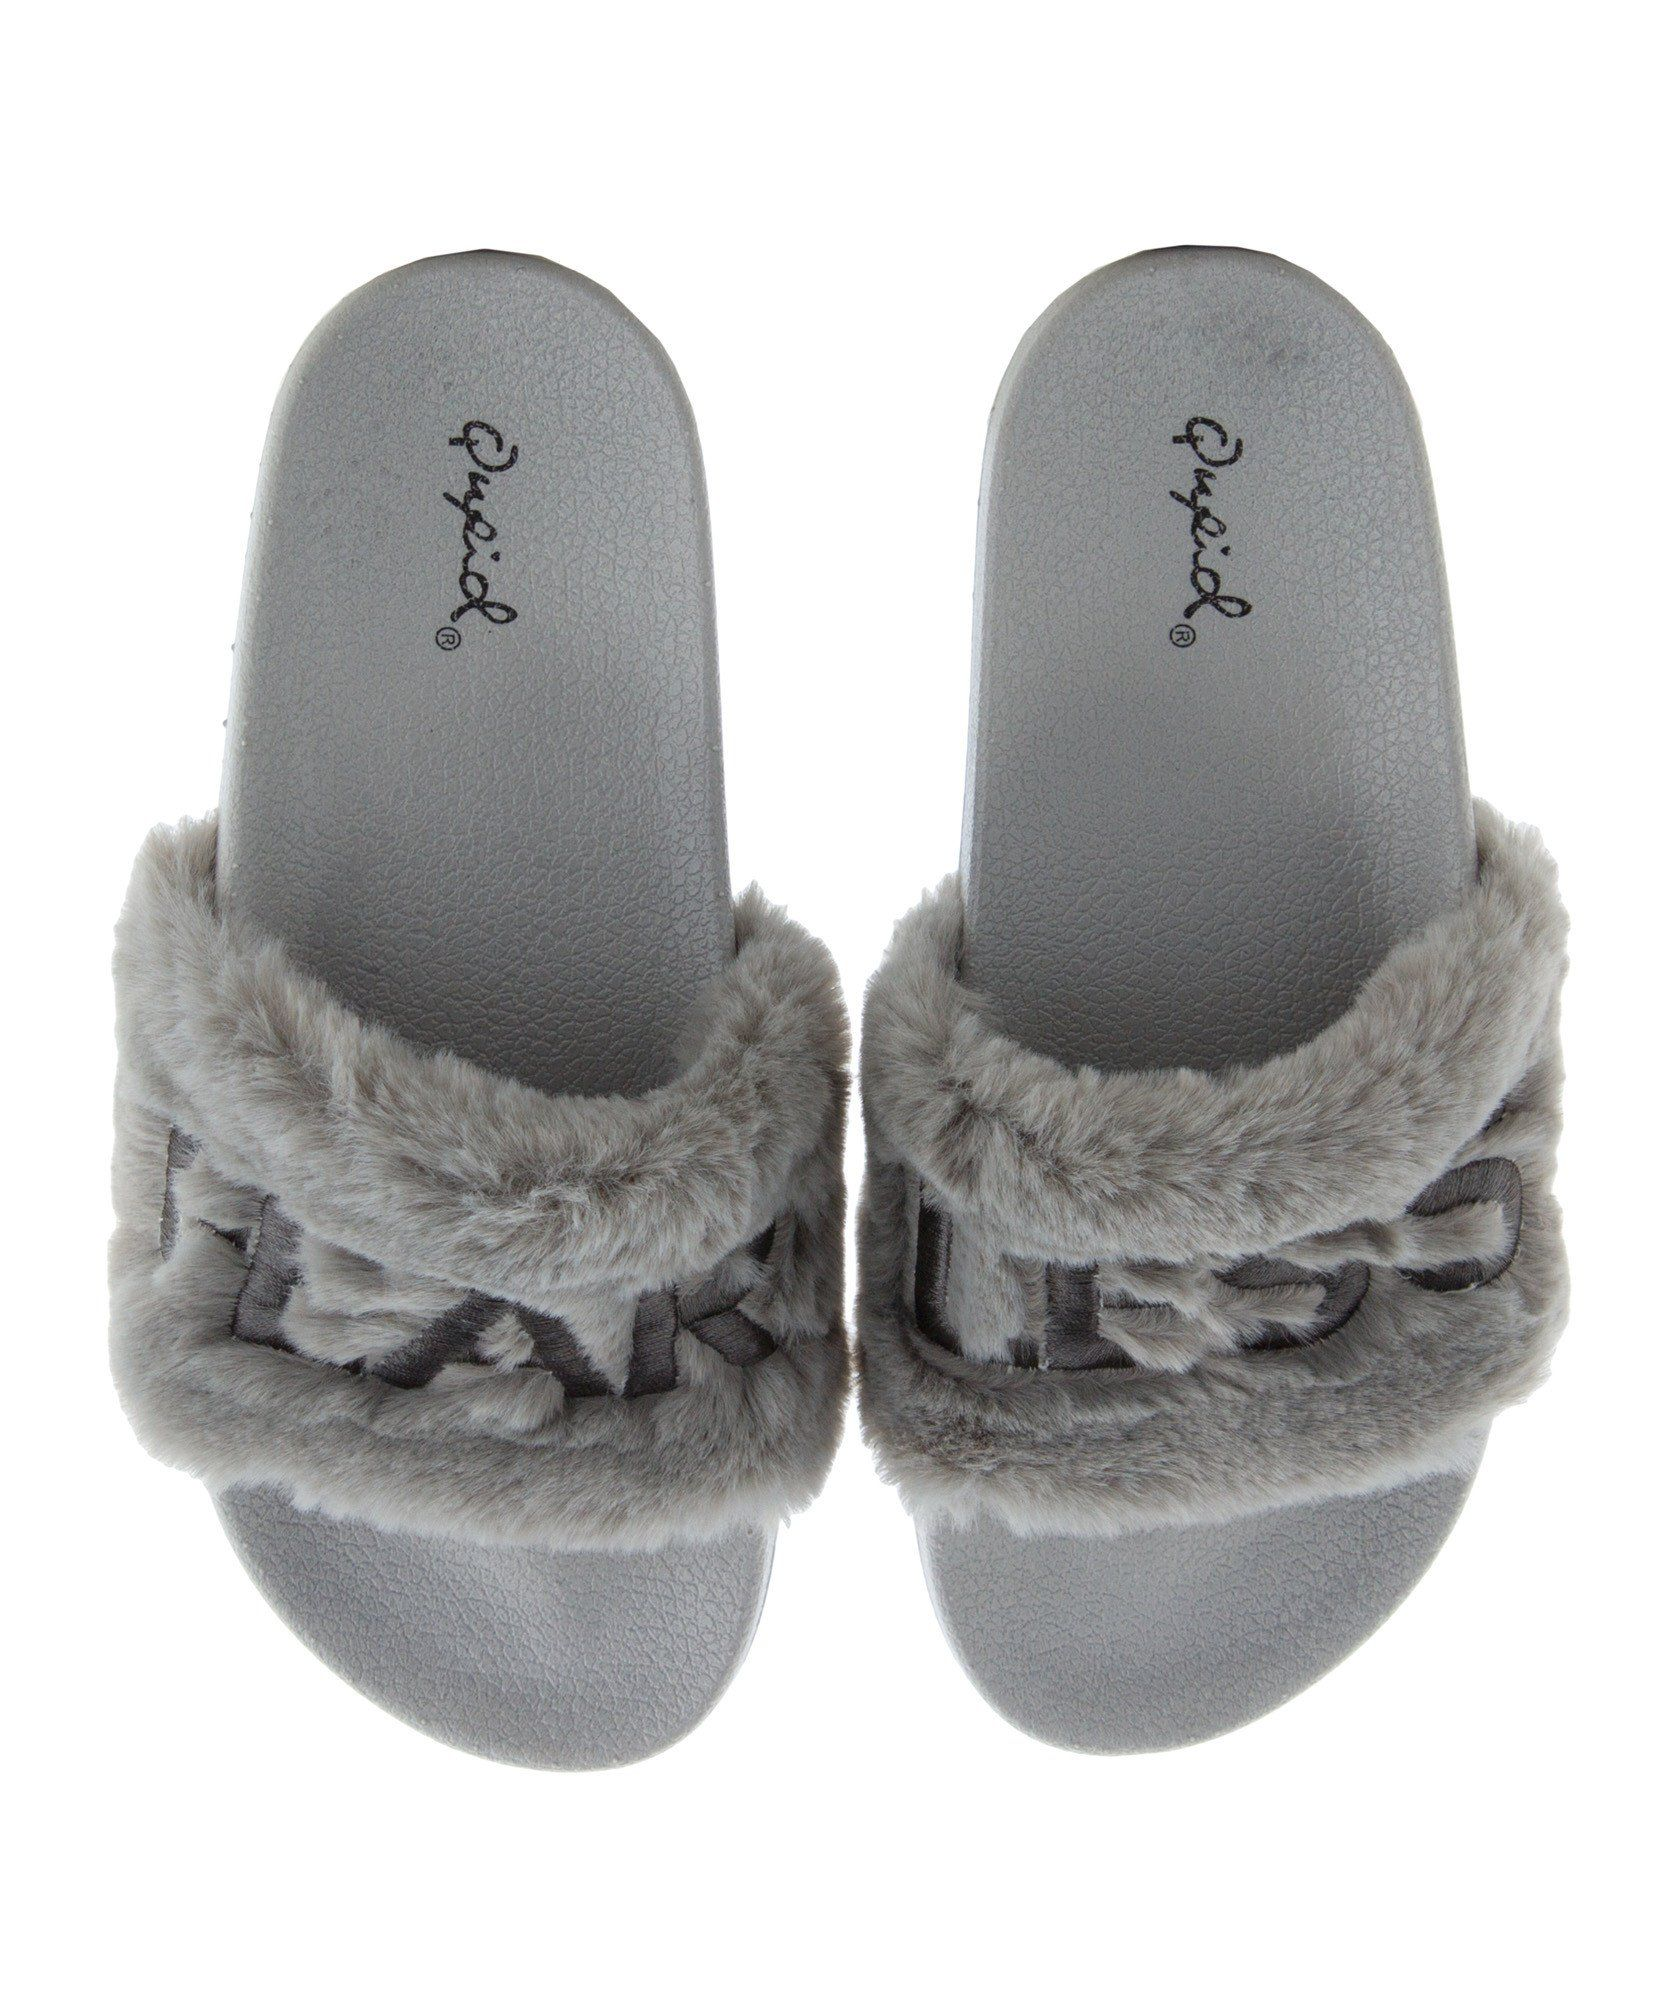 Black qupid sandals